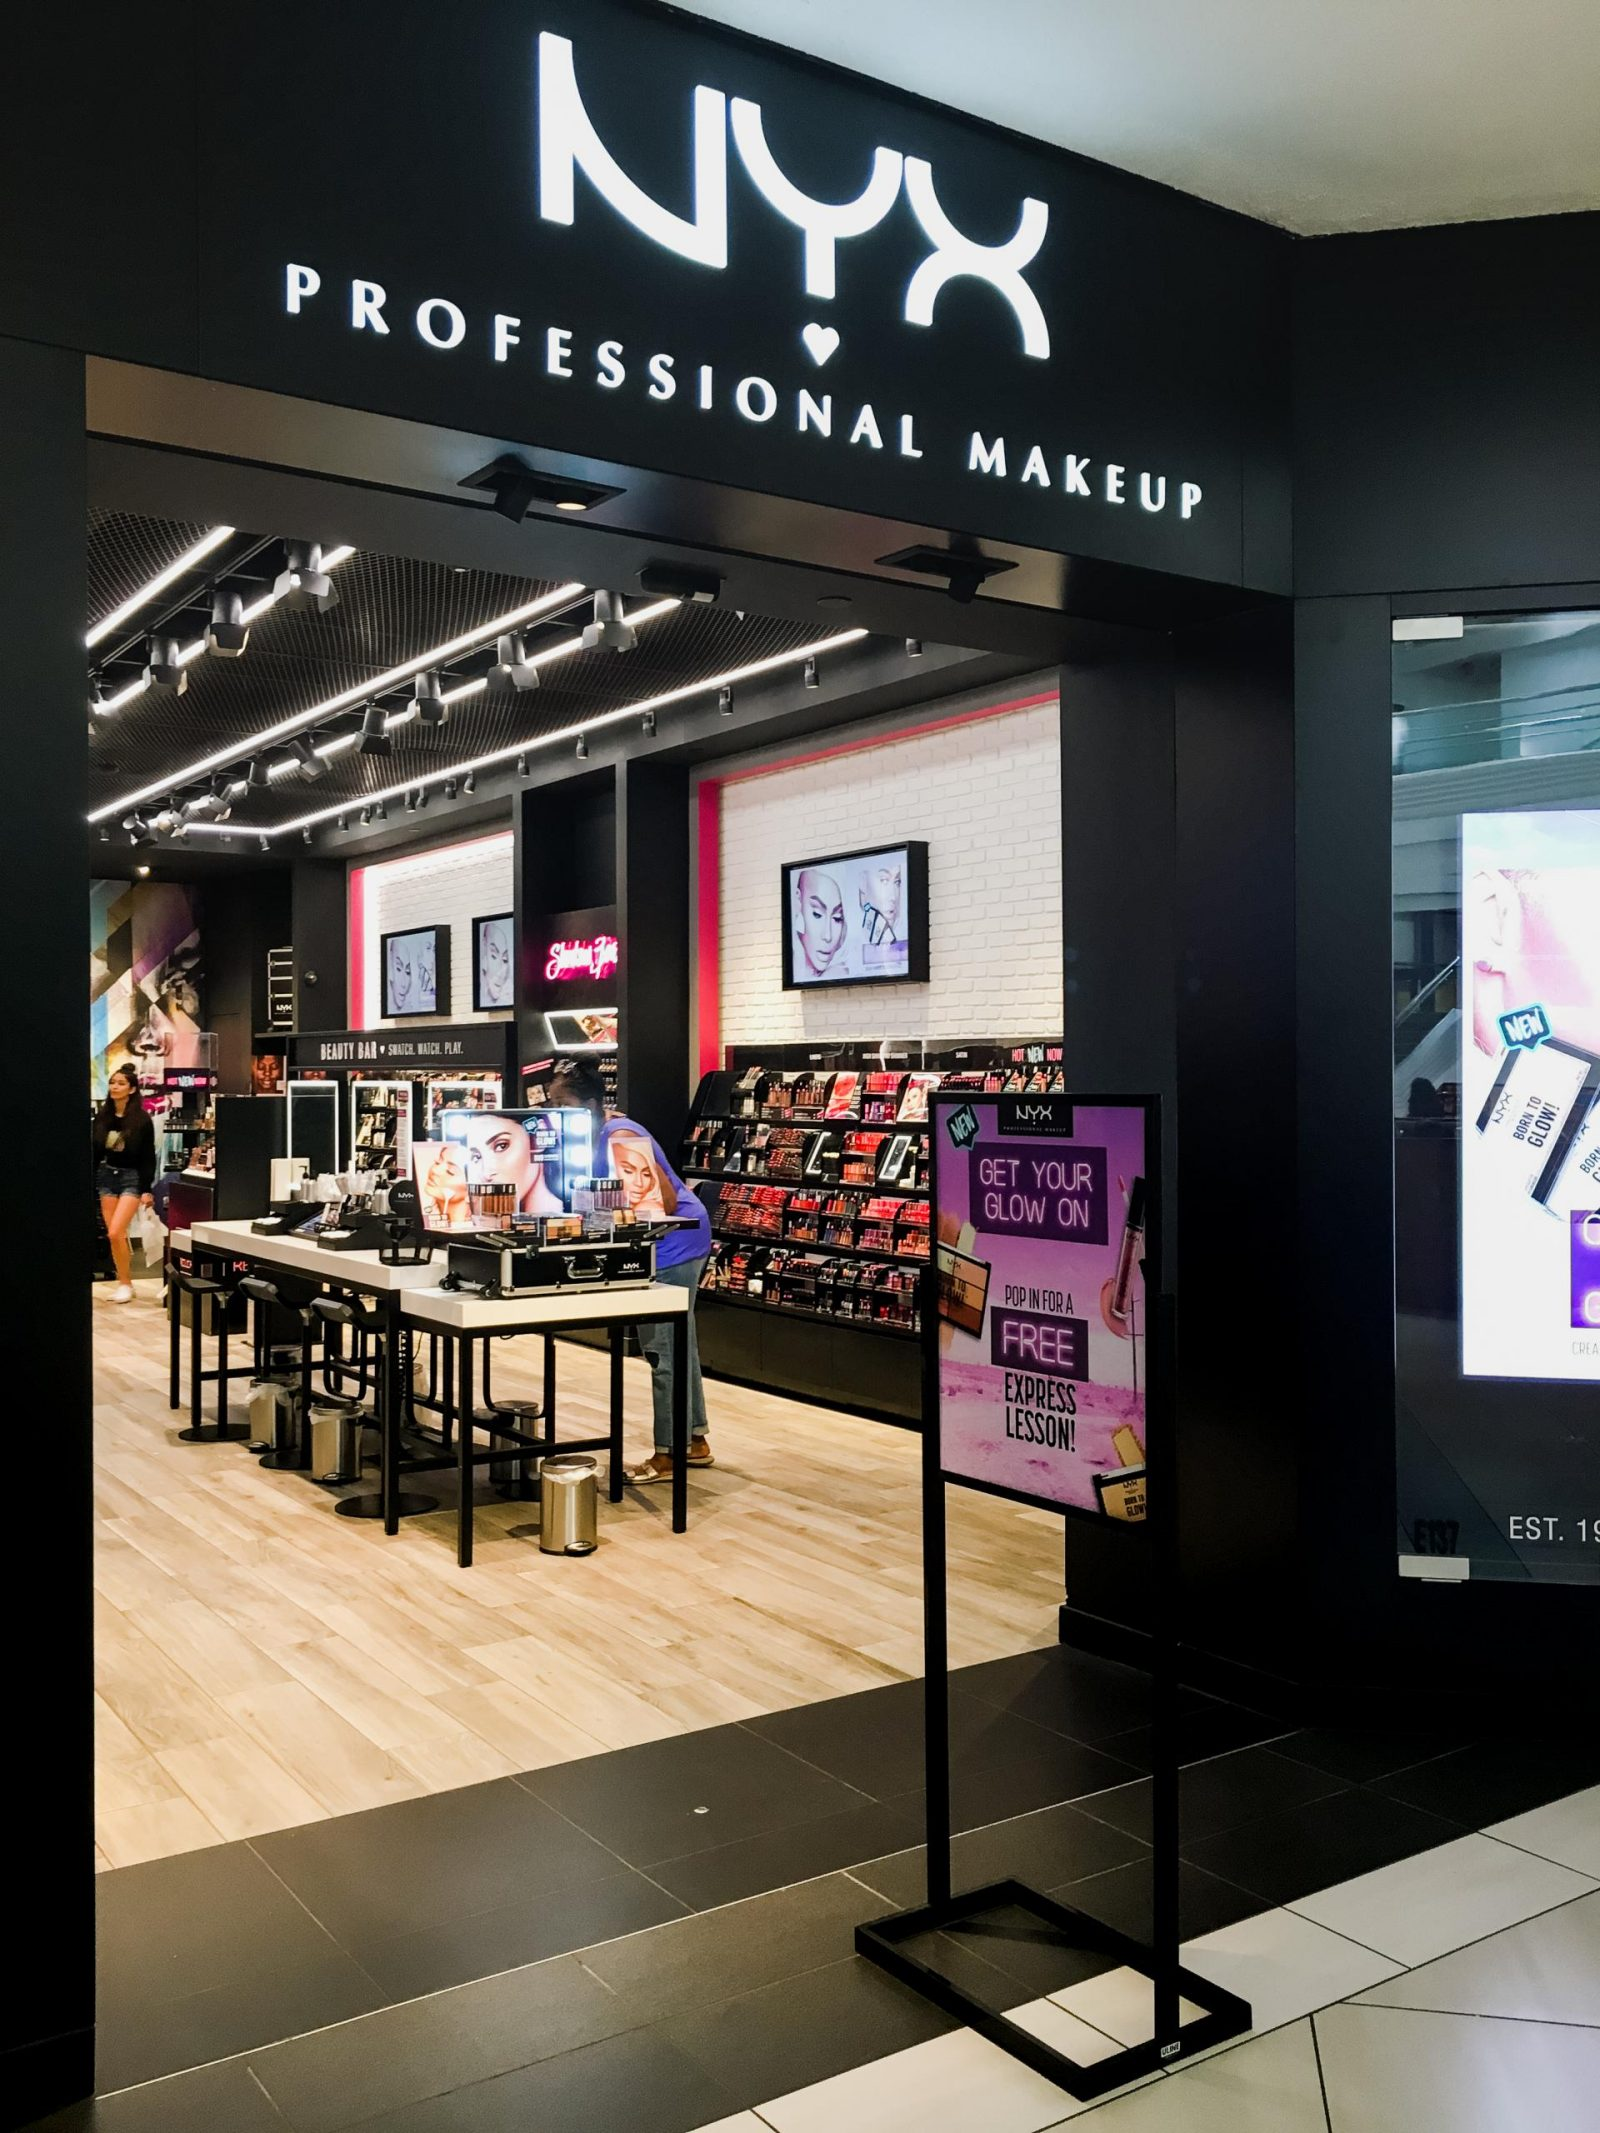 NYX Makeup at Woodfield Mall in Schaumburg, Illinois. The Best Woodfield Mall Stores in Schaumburg Illinois. Woodfield Mall is one of the biggest malls in America, let me help you decide where to stop first!